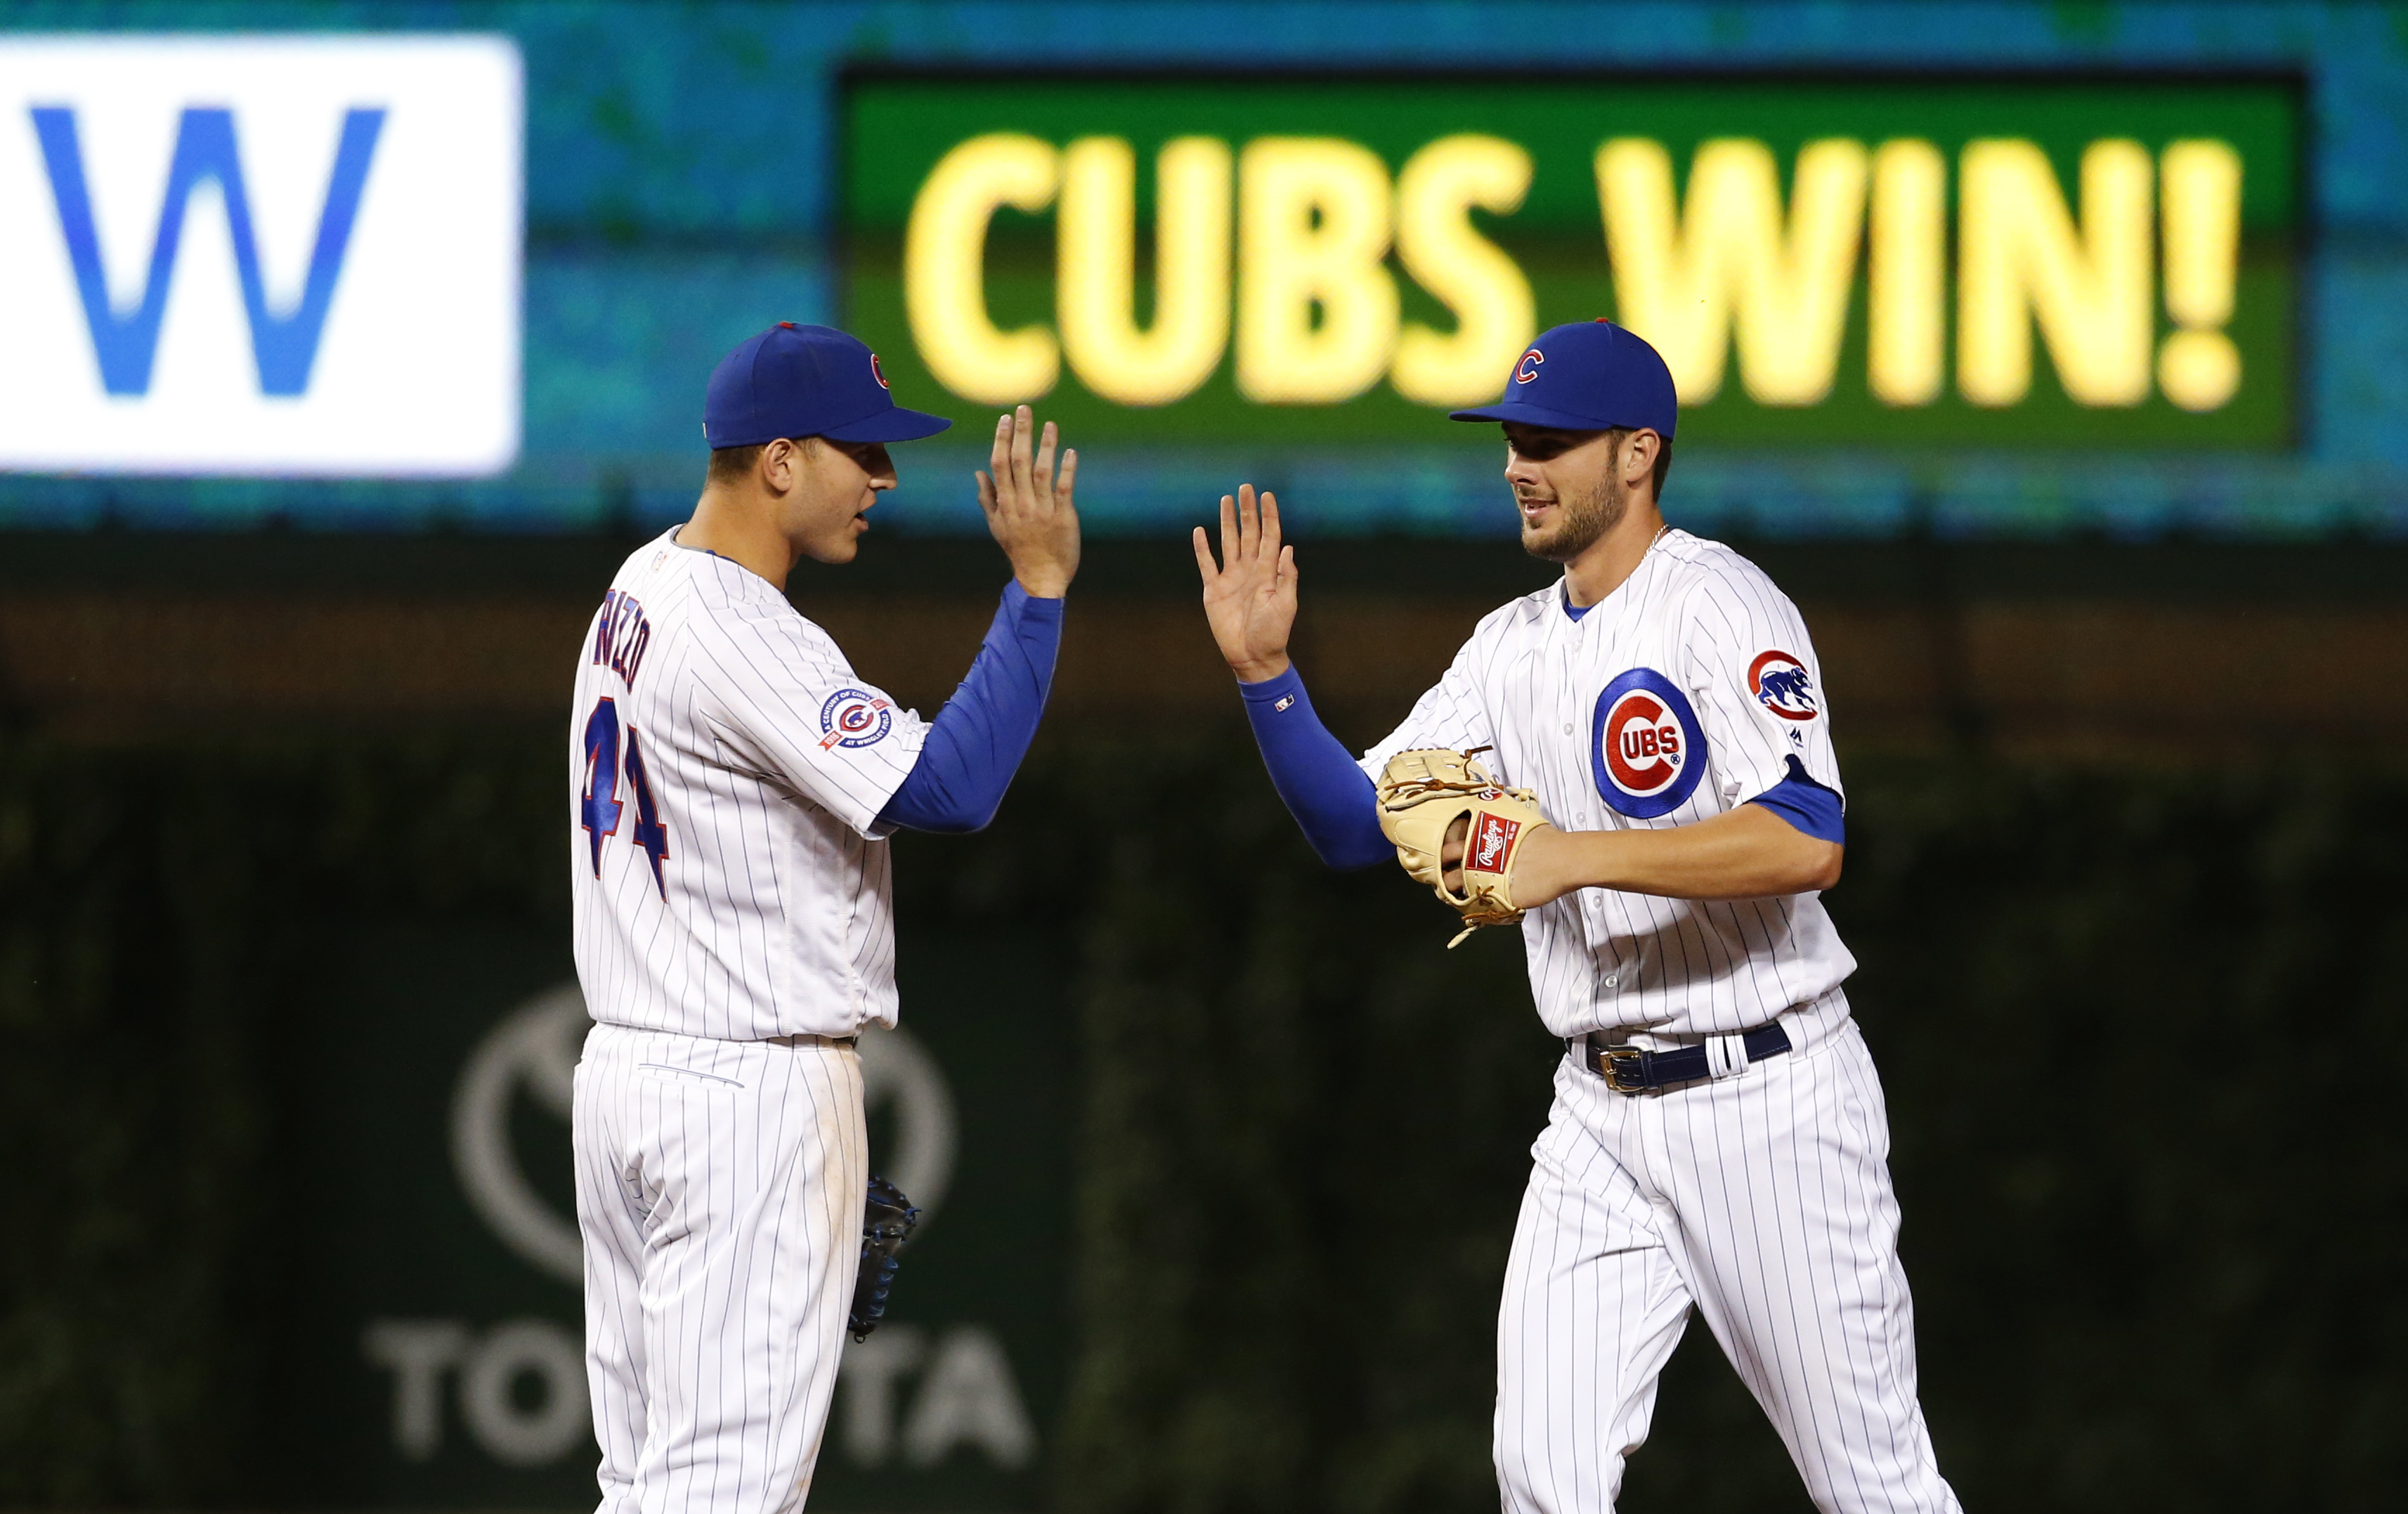 Chicago Cubs' Anthony Rizzo, left, celebrates with Kris Bryant after the Cubs defeated the Pittsburgh Pirates 4-3 in a baseball game Saturday, June 18, 2016, in Chicago. (AP Photo/Nam Y. Huh)